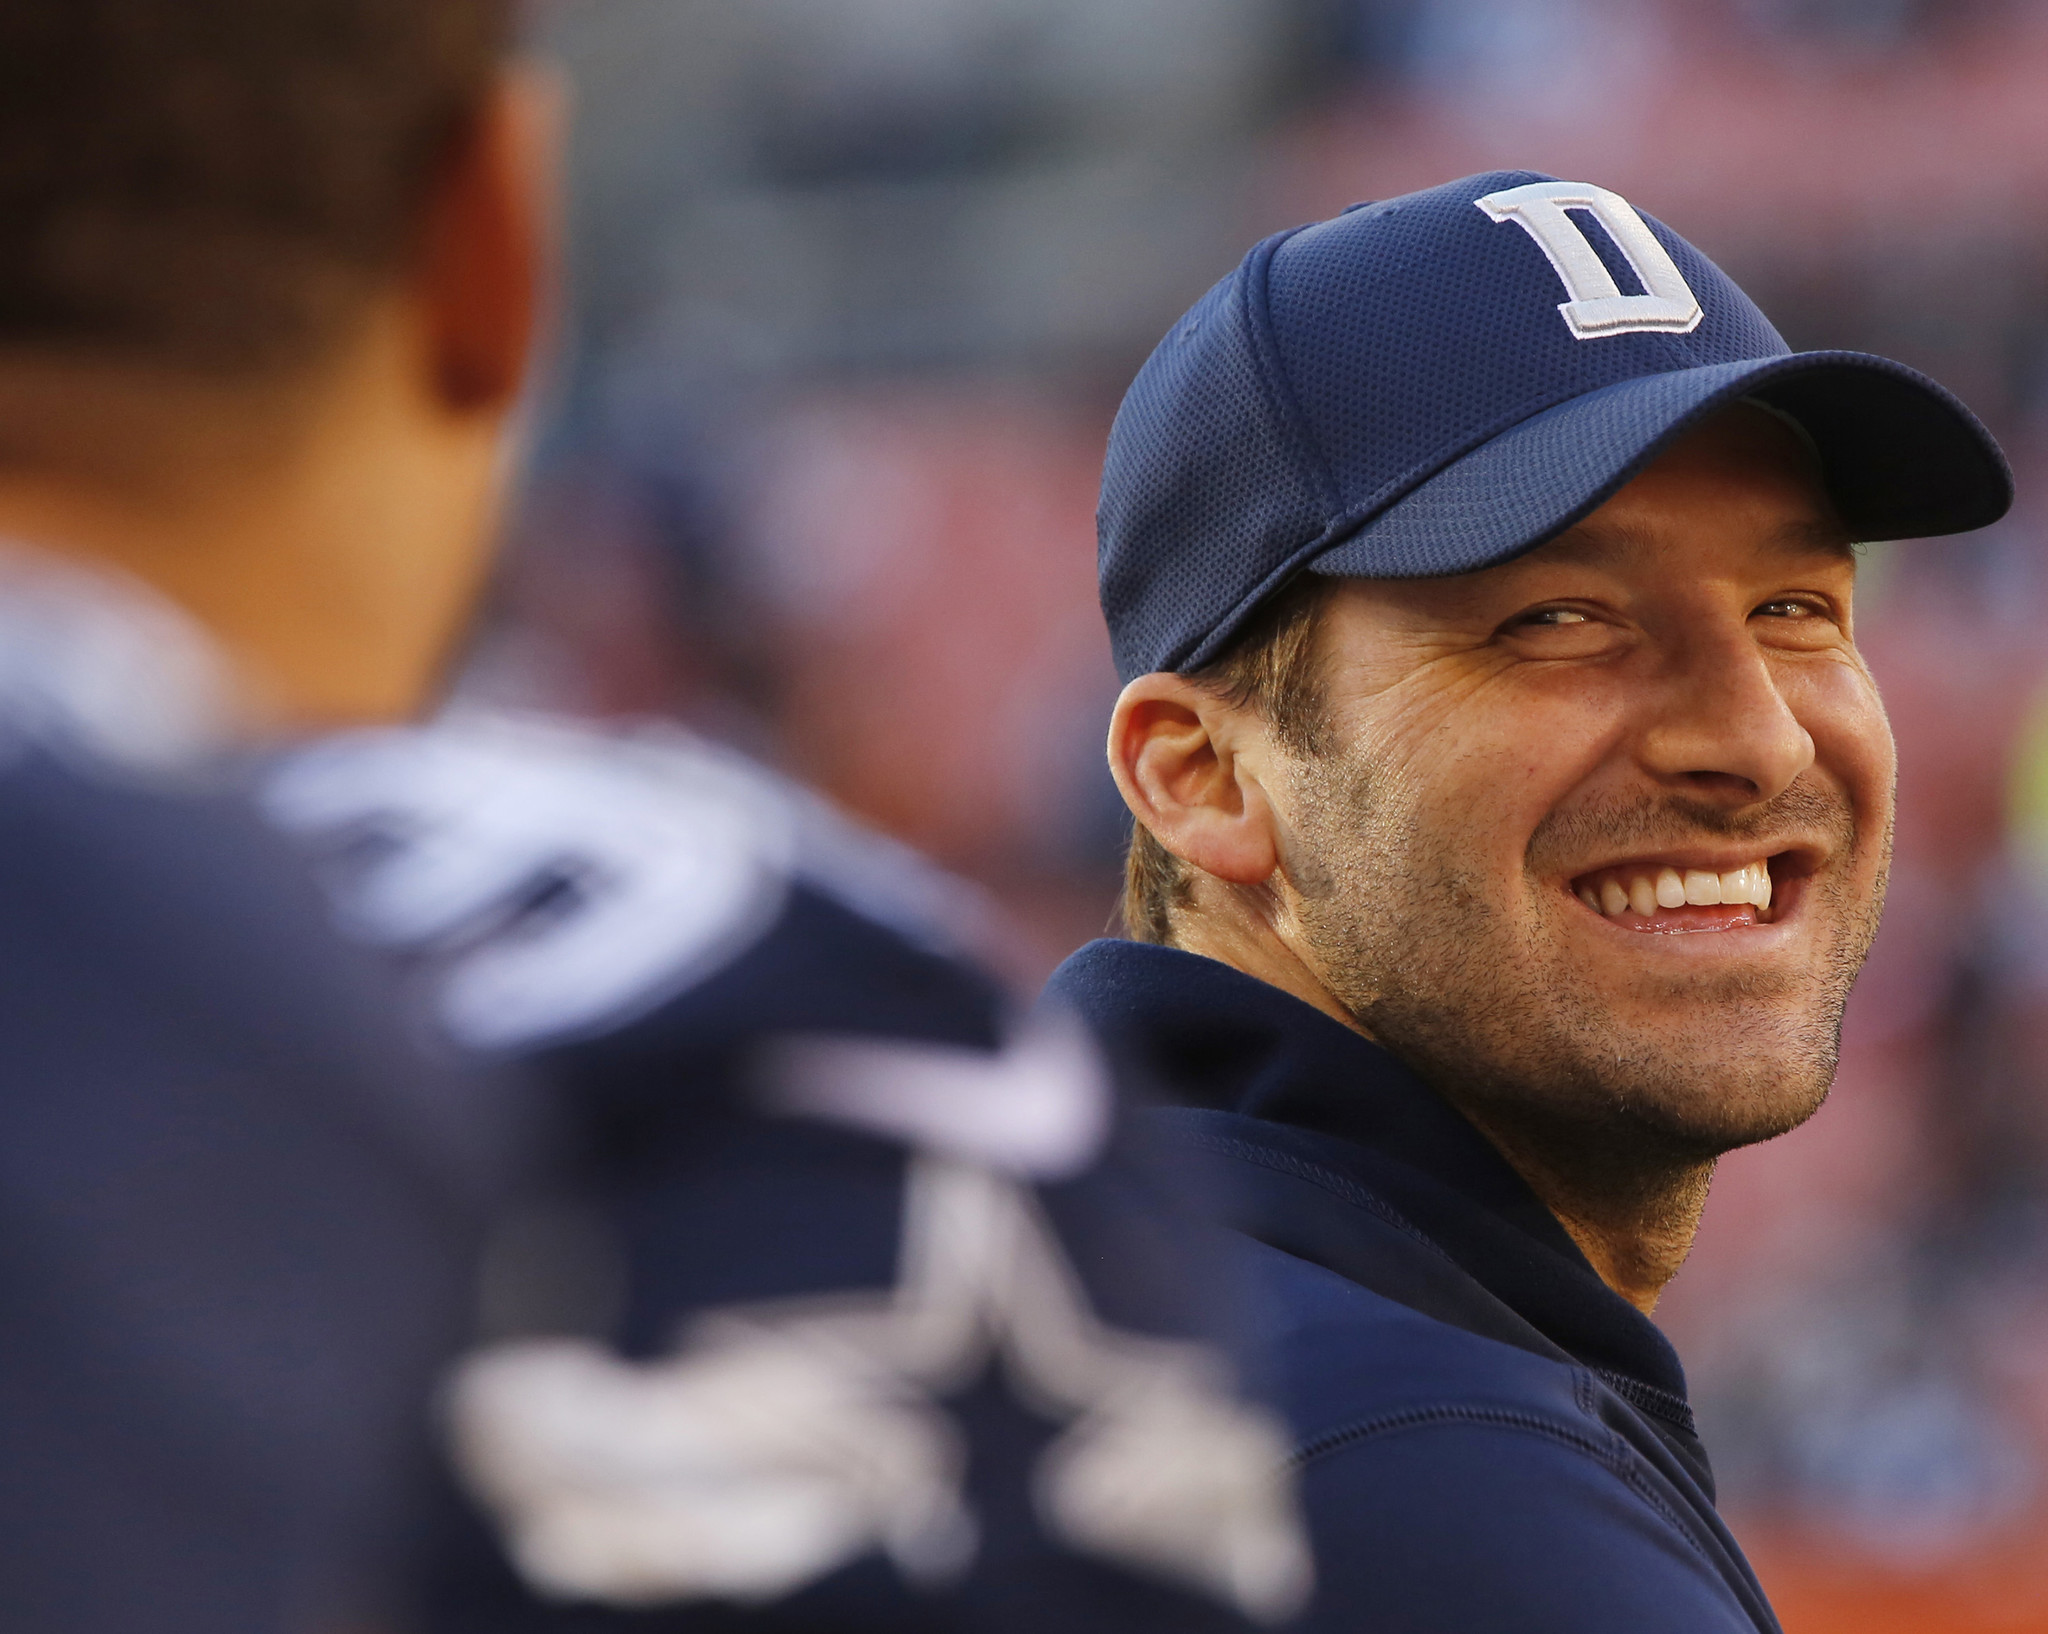 Watch Tony Romo Predict Plays In His Broadcasting Debut On